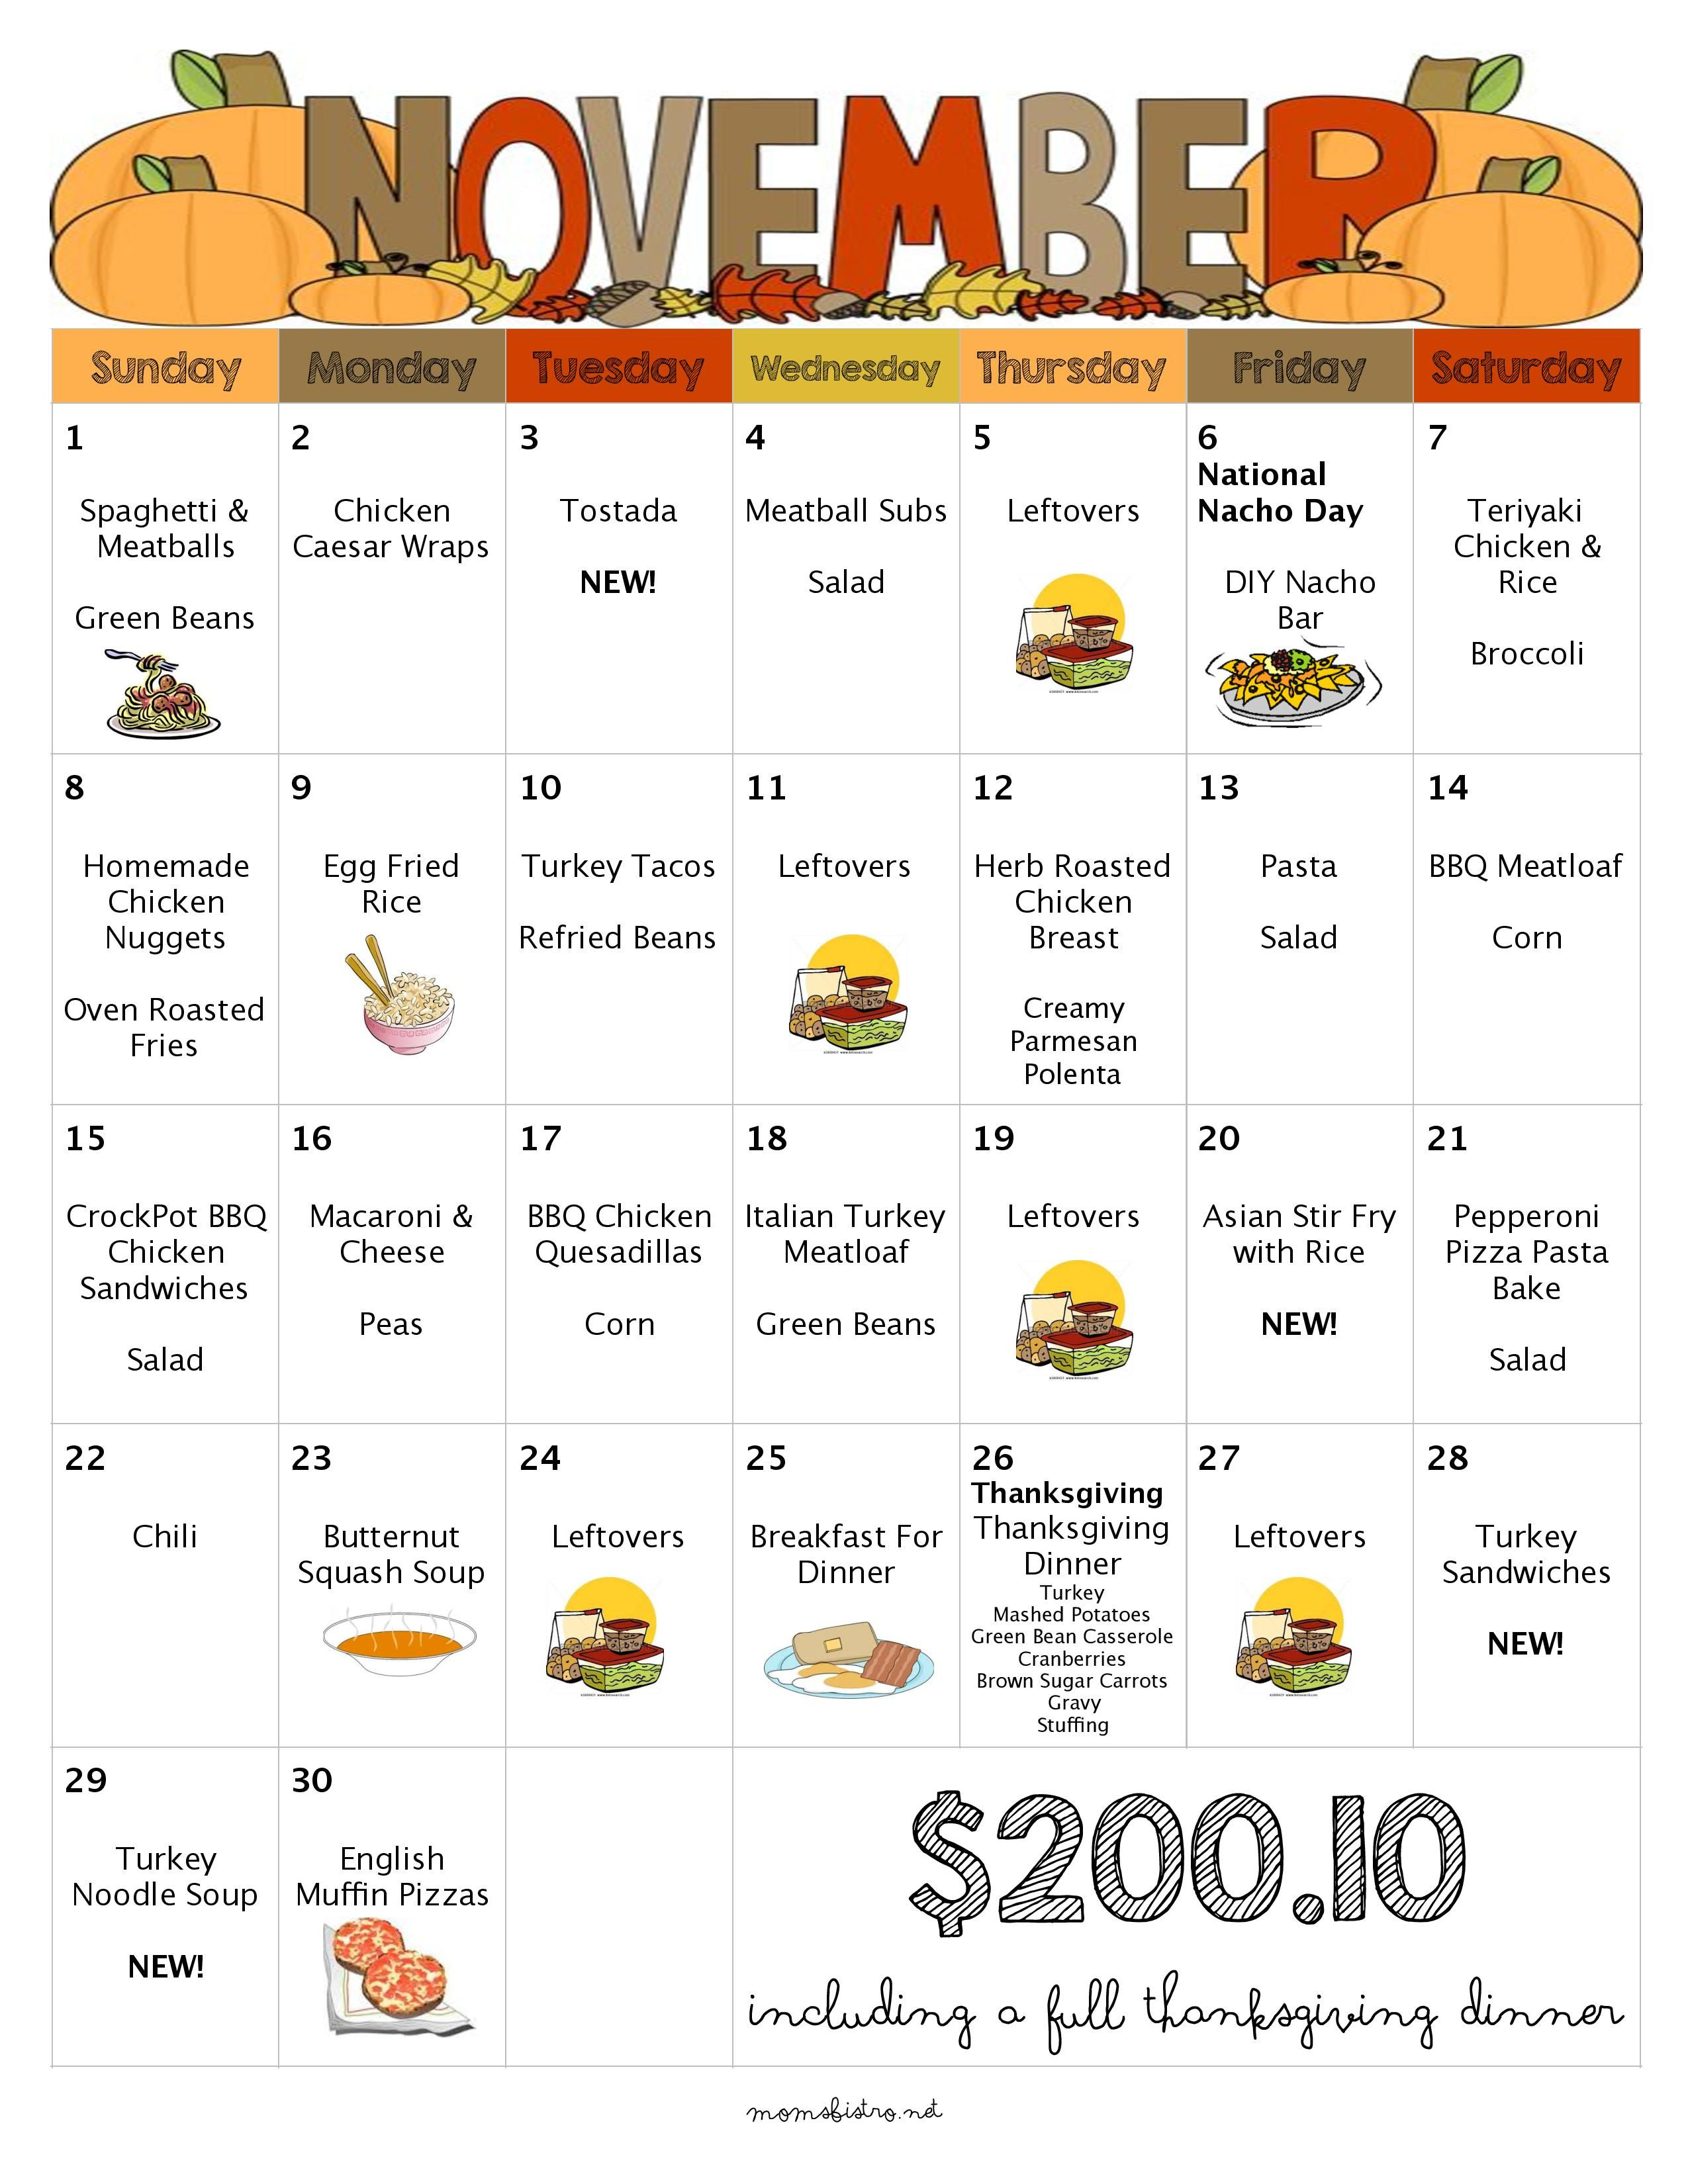 Free money saving weekly meal plans printable plans with family - November Menu Free Printable Grocery List Thanksgiving Dinner Leftovers Kid Friendly Recipes Weekly Grocery List